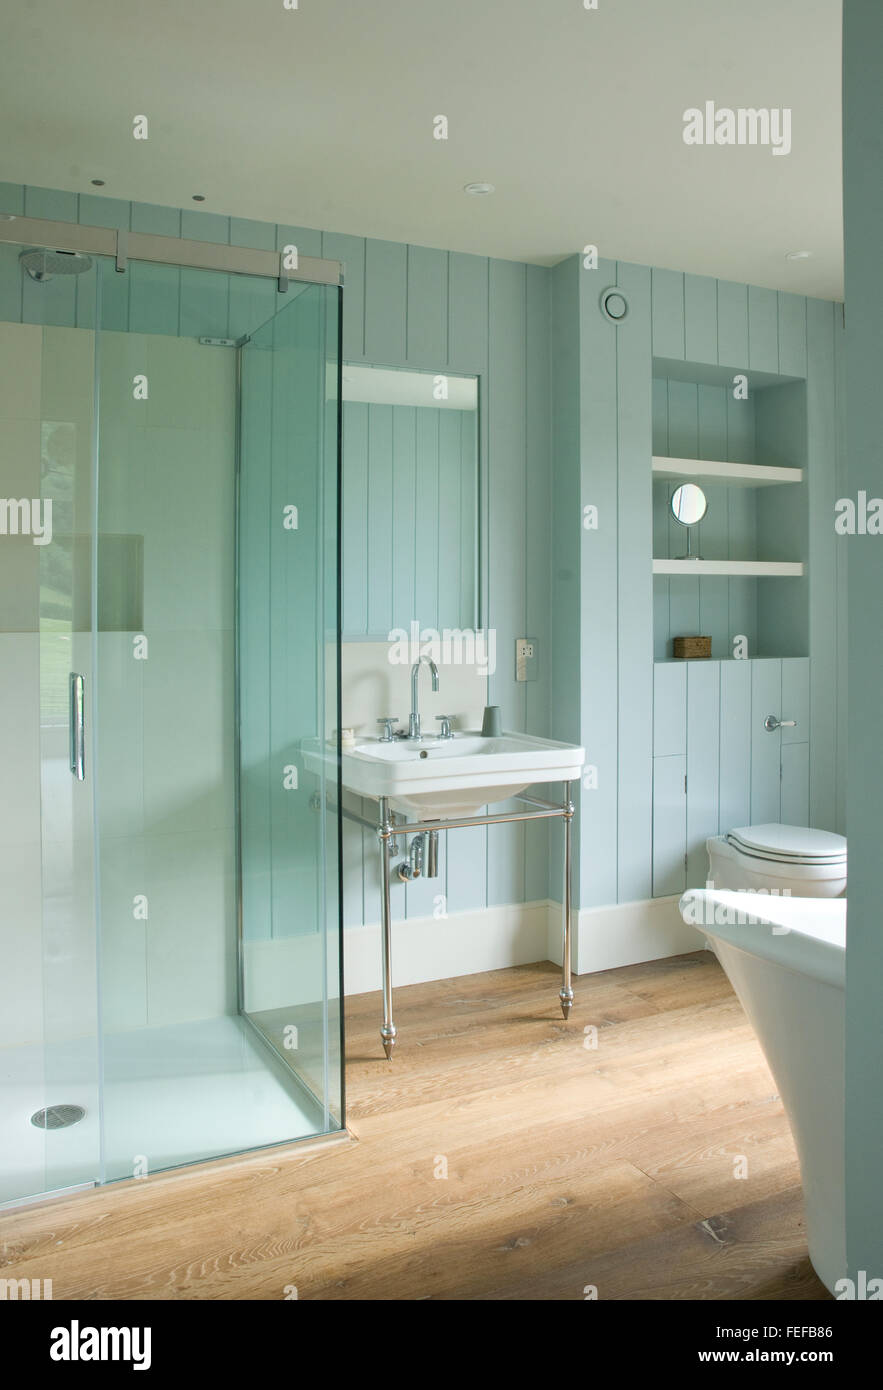 paneled bathroom, blue/green/pastel, shower cubicle, wood floor ...